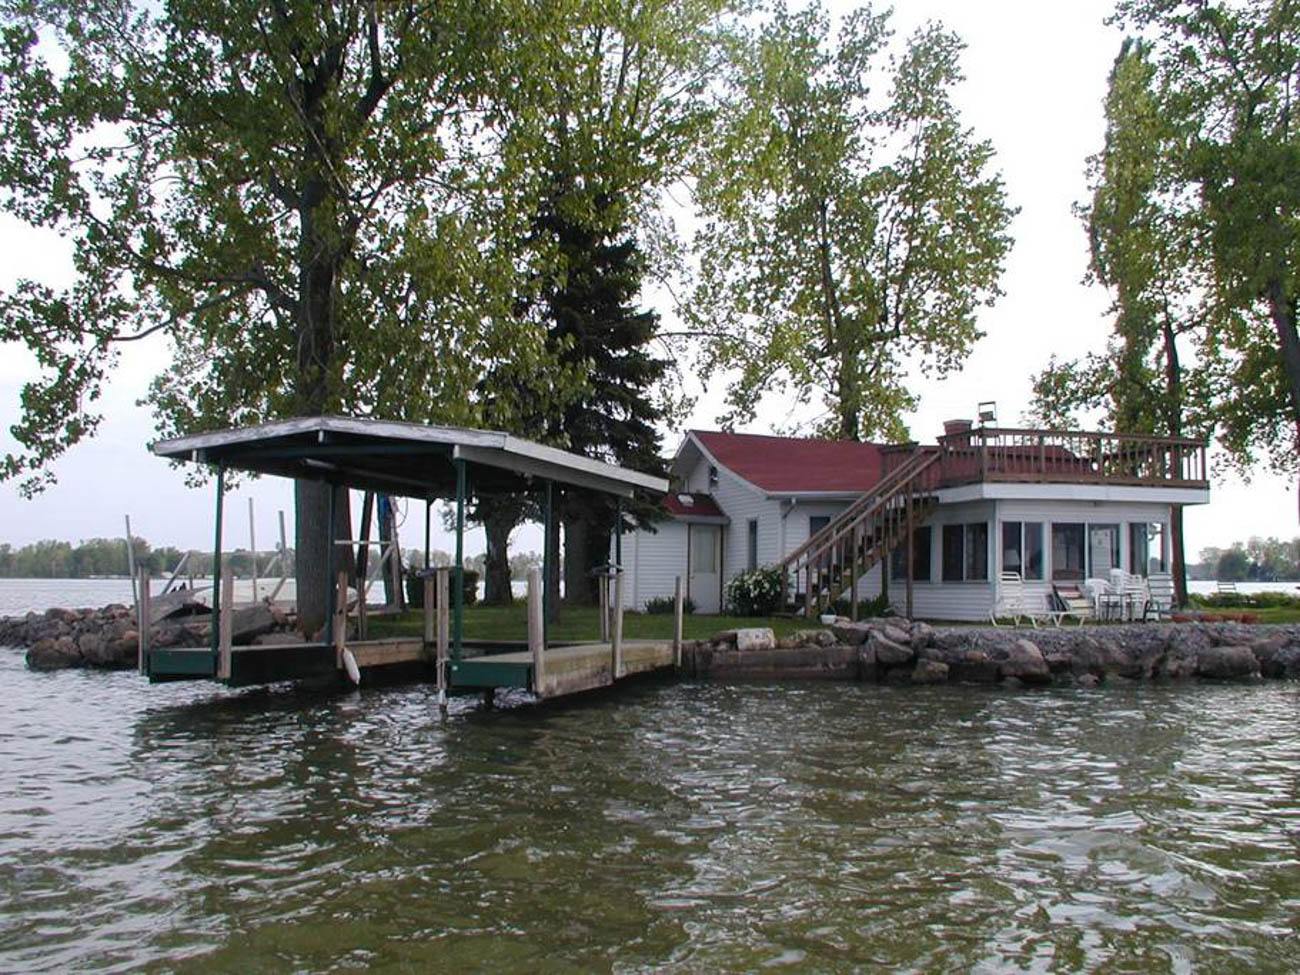 Turtle Shell Island on Indian Lake was once owned by a silent movie star, and you may feel like one too when a boat delivers you to your own private island. The cottage on Indian Lake has been transformed into an ultra-private vacation destination with everything you need for a memorable stay like fishing poles, a shuffleboard, and plenty of space for grilling out and swimming under the sun. The 2-bedroom, 1-bath space sleeps up to six guests. It takes a little over two hours to get there from Cincinnati. / Image: TR Massey // Published: 5.21.19